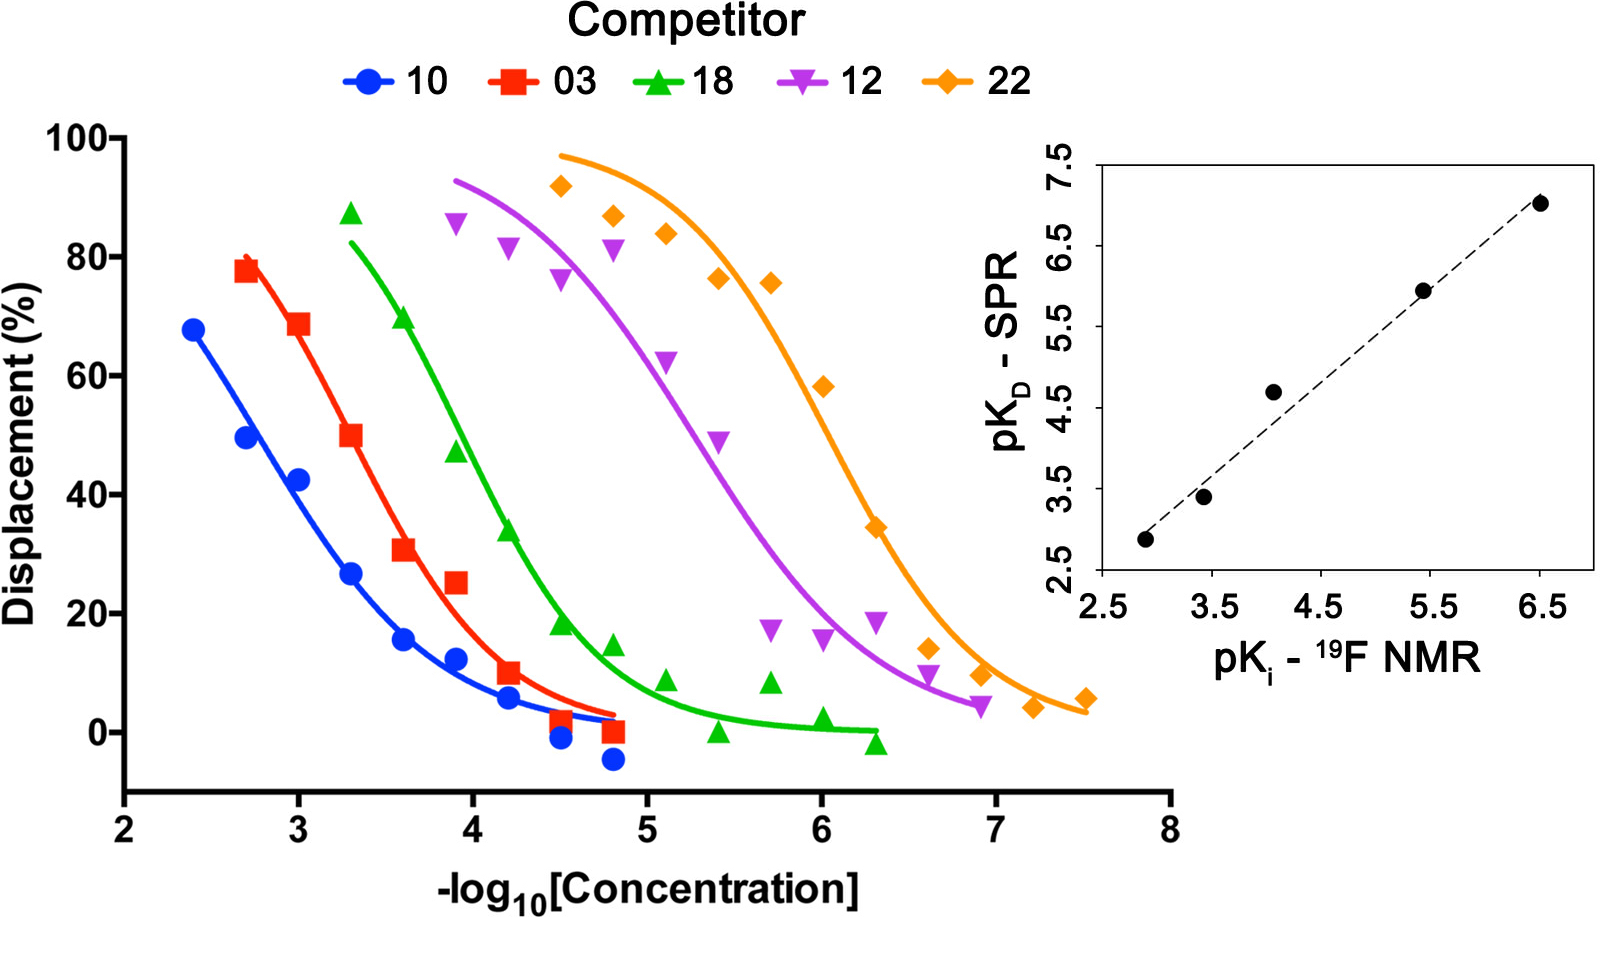 Fig. 5  Determination of the affinities of VHL binders using spy molecule 19. Displacement of spy molecule 19 in the presence of different concentrations of five VHL binders (molecules 3, 10, 12, 18 and 22) was concentration dependent. By knowing the concentrations of spy molecule (50 μM), and protein (1 μM) and the KD between spy molecule 19 and VHL, the Ki of each competitor was determined, having good correlation with the respective KD values obtained by SPR (top right inset graph).